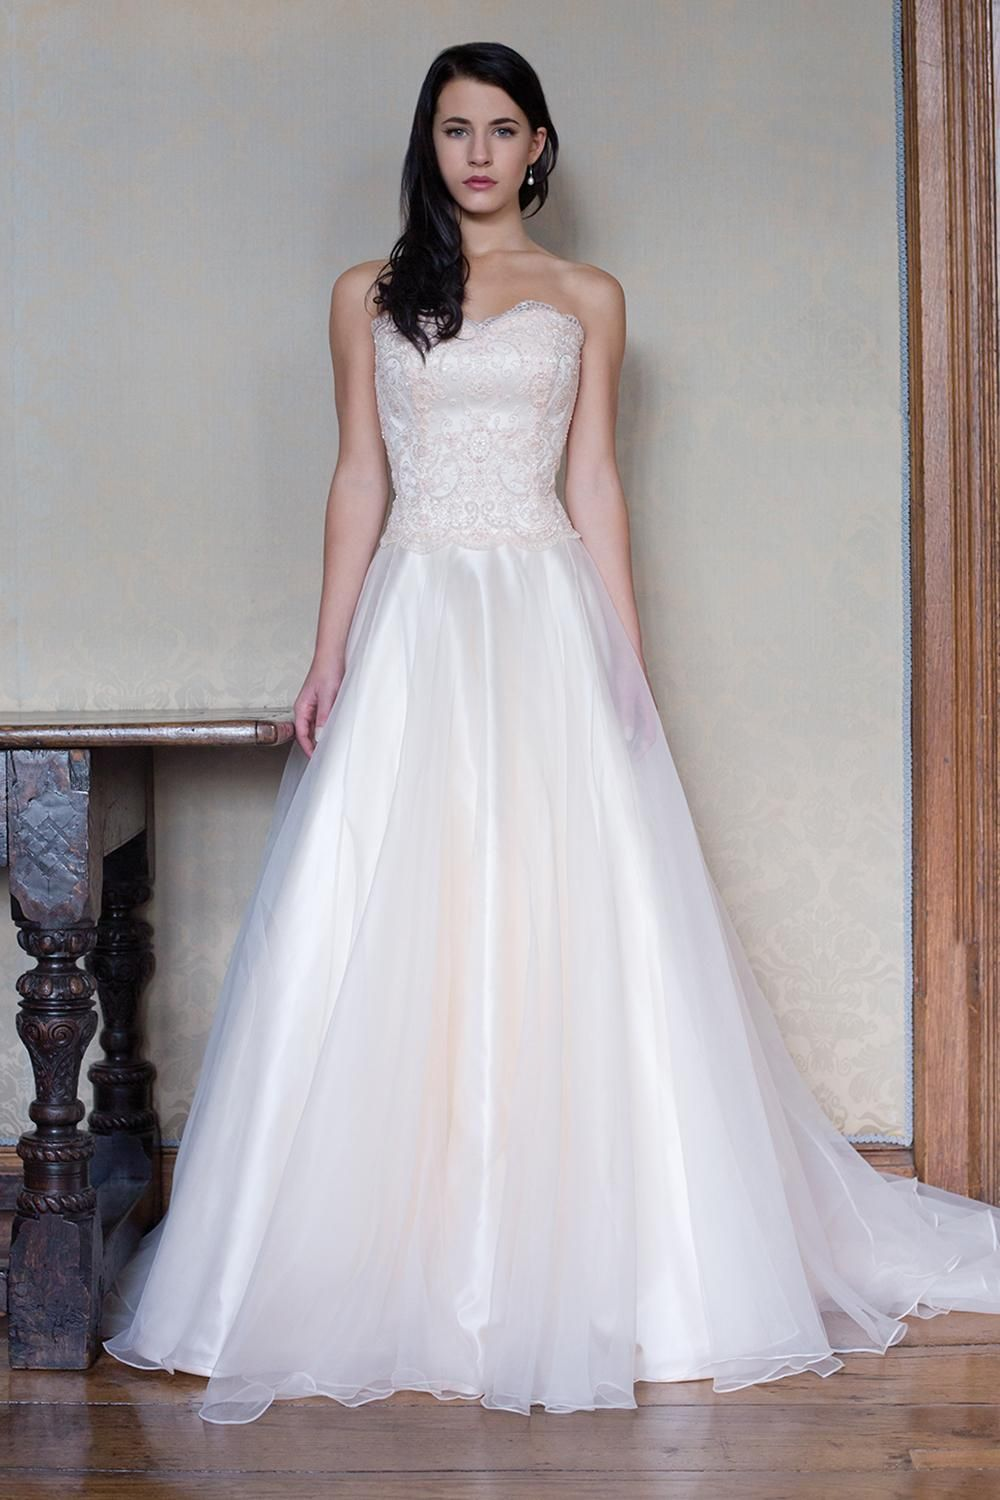 Size 24 wedding dress  A chic sweetheart Aline beauty with a natural waist in tantalizing